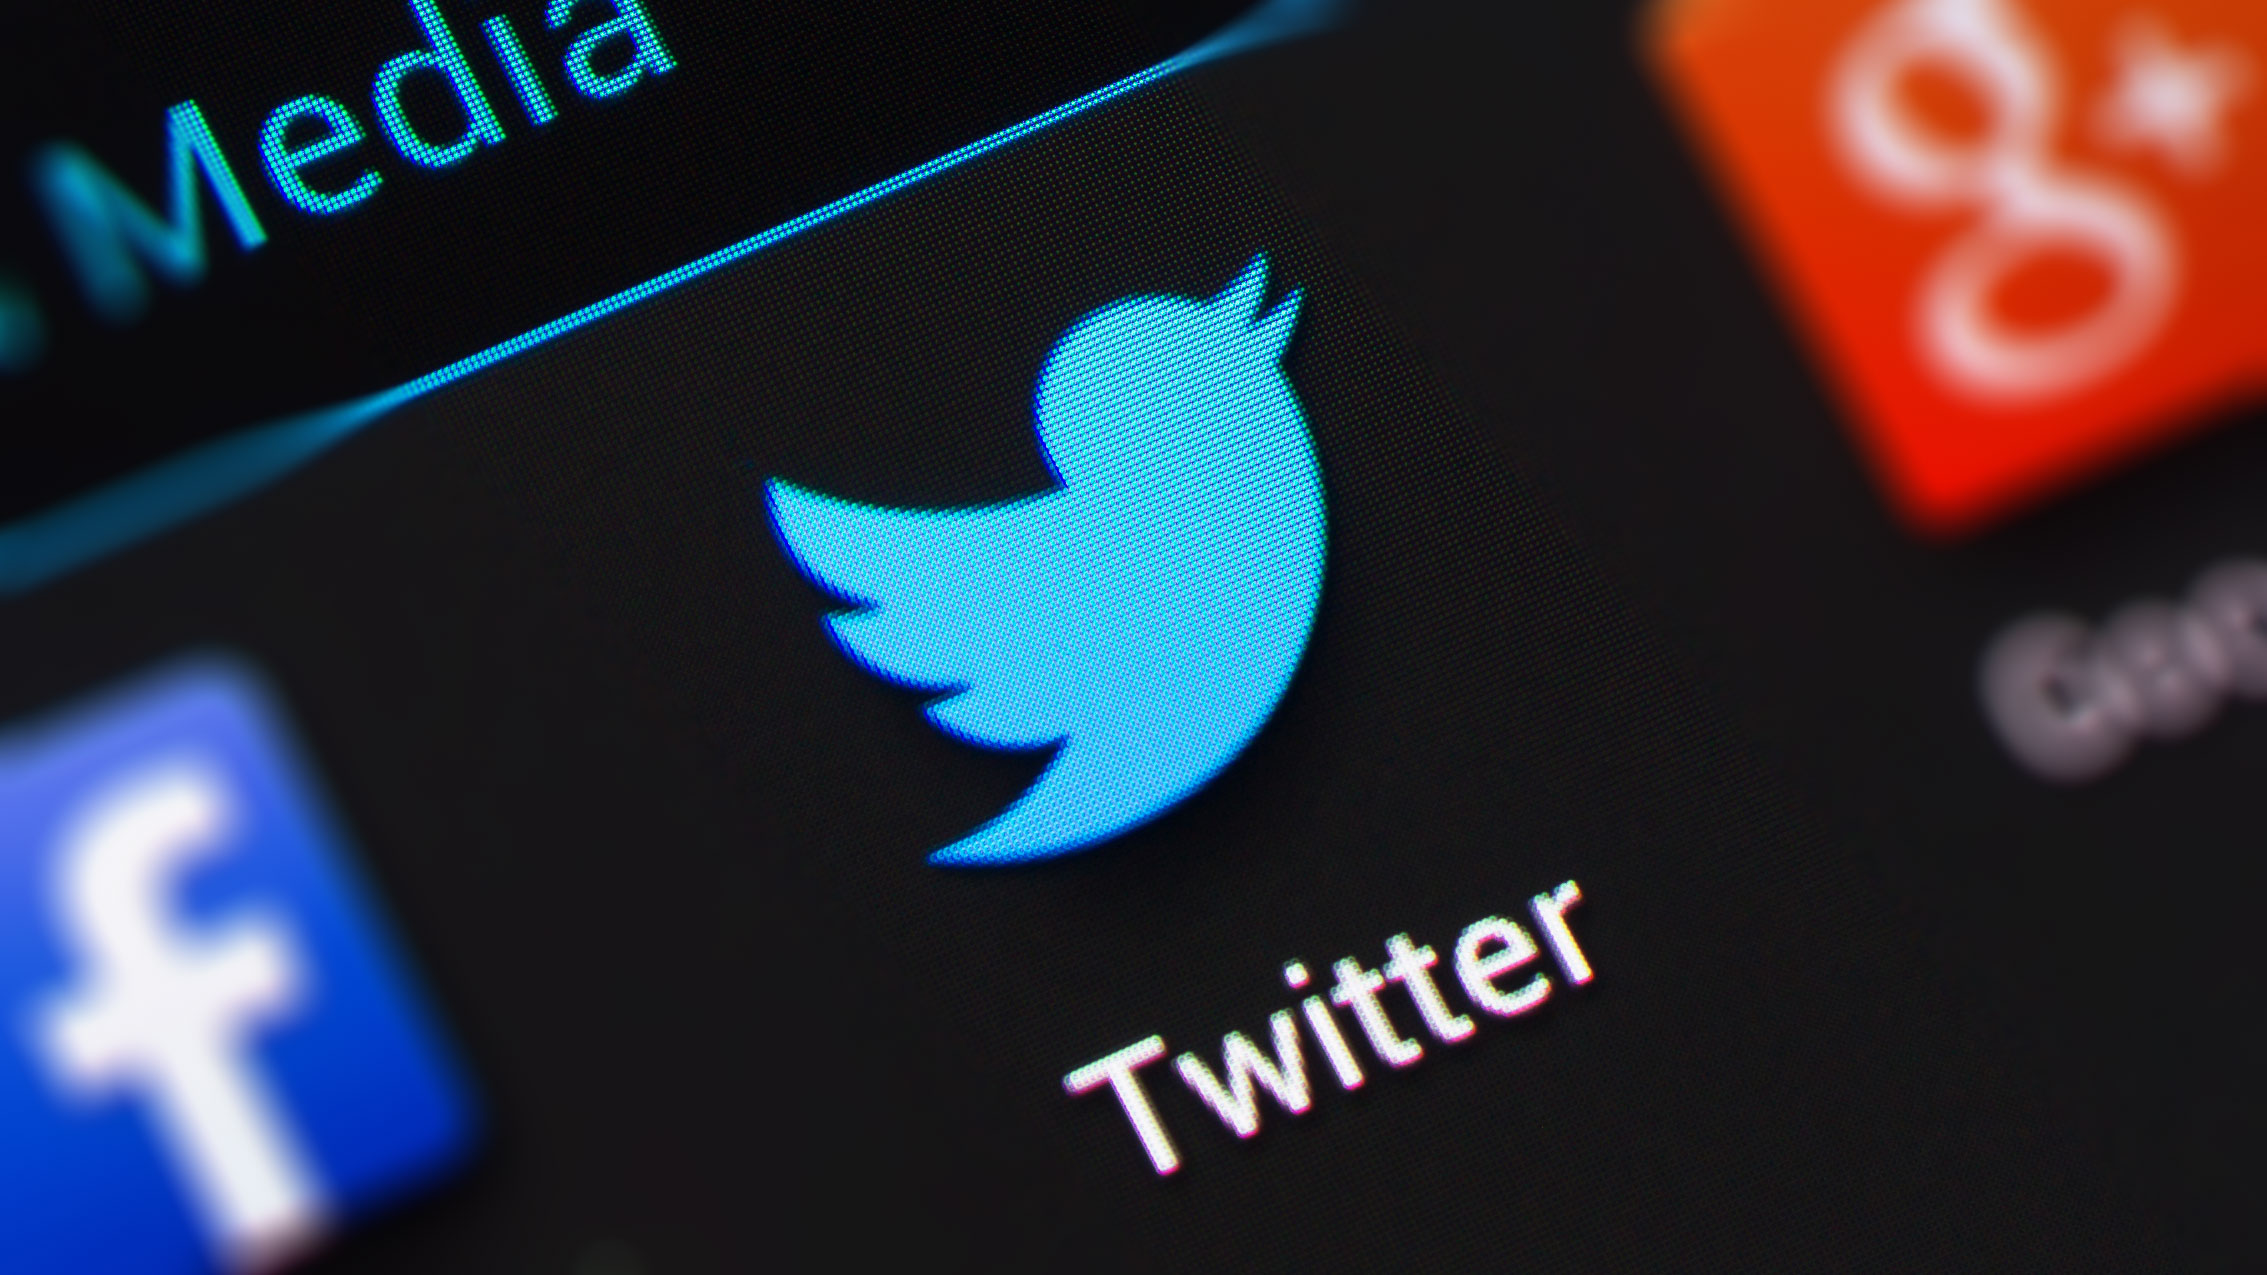 Twitter Lite with lower data usage becomes available in 24 new countries